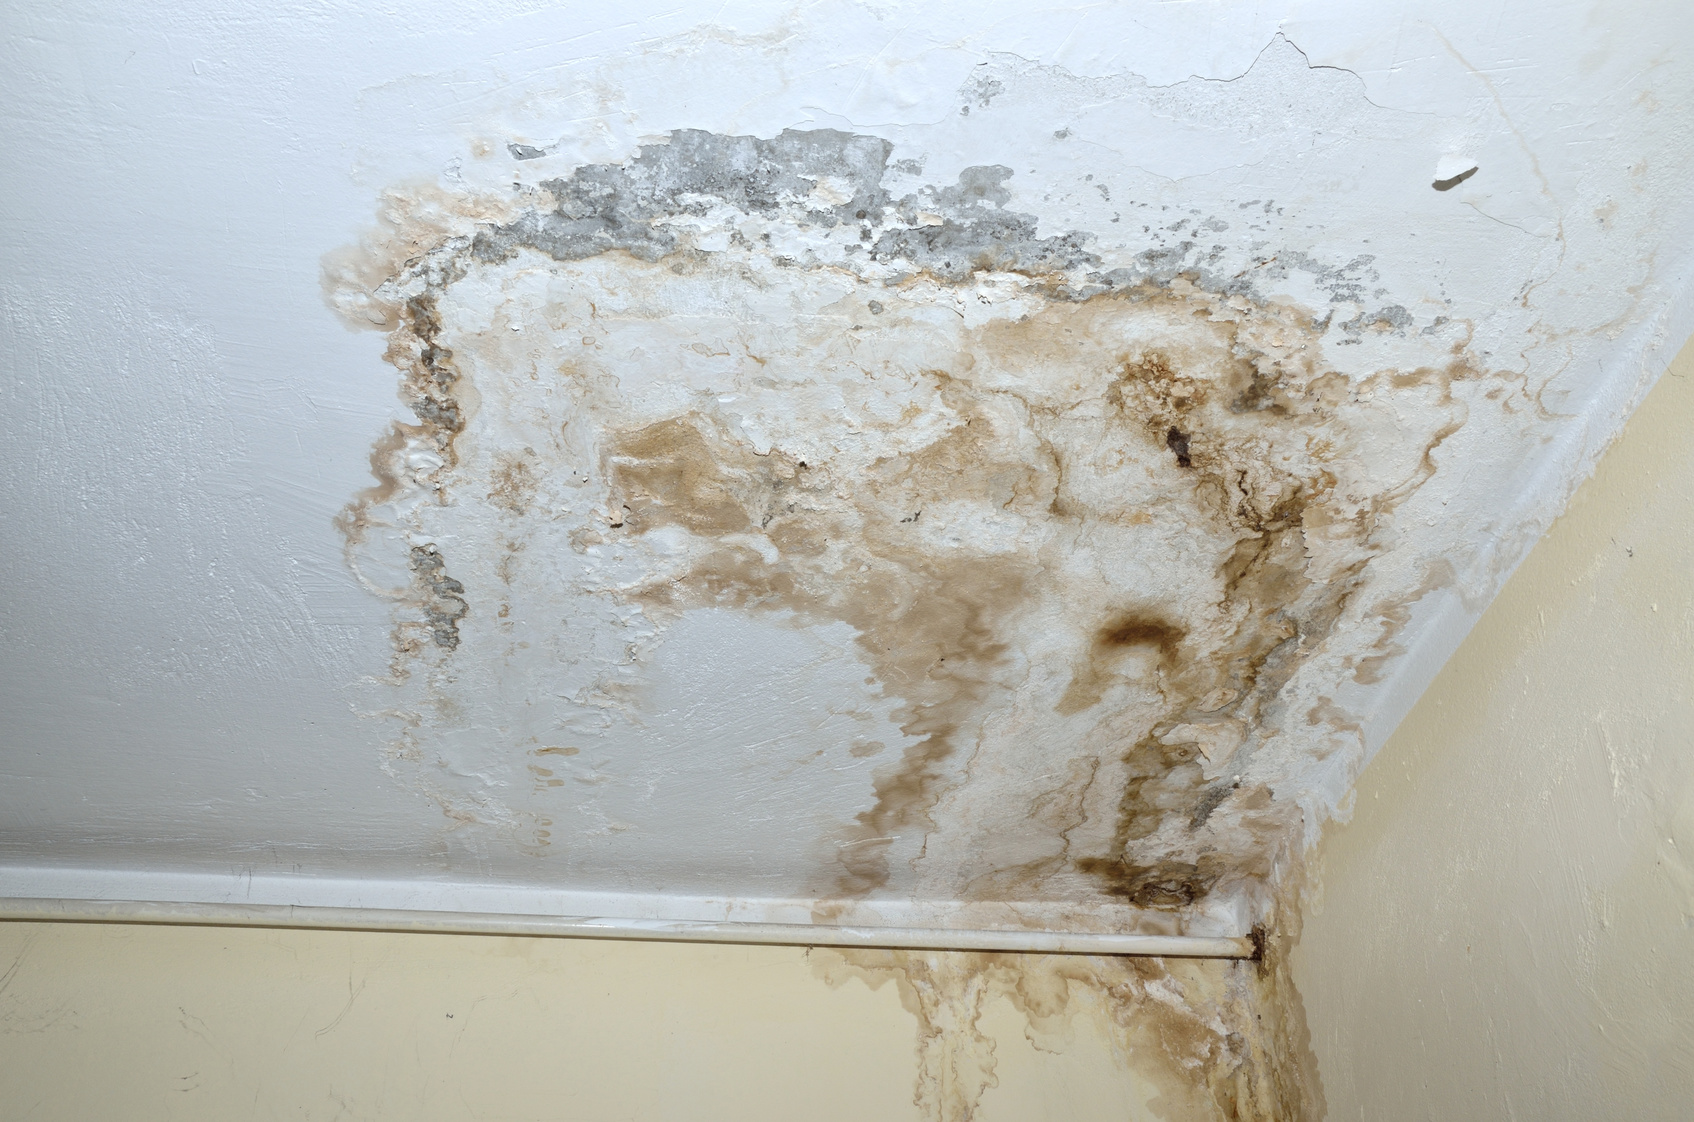 Mold on white ceiling and heat pipe